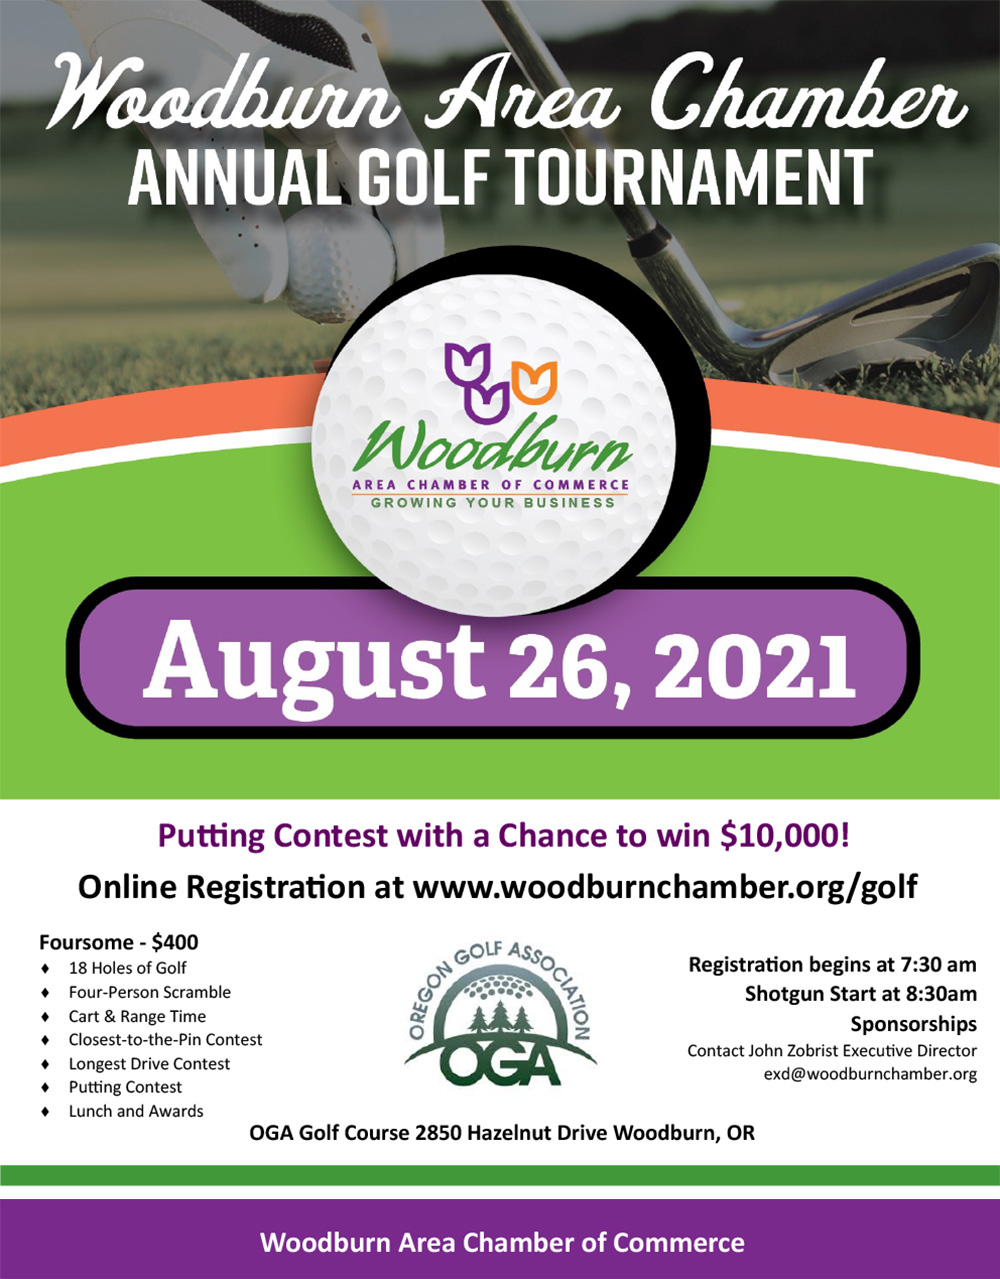 Woodburn Area Chamber of Commerce Golf Tournament 2021 Flyer